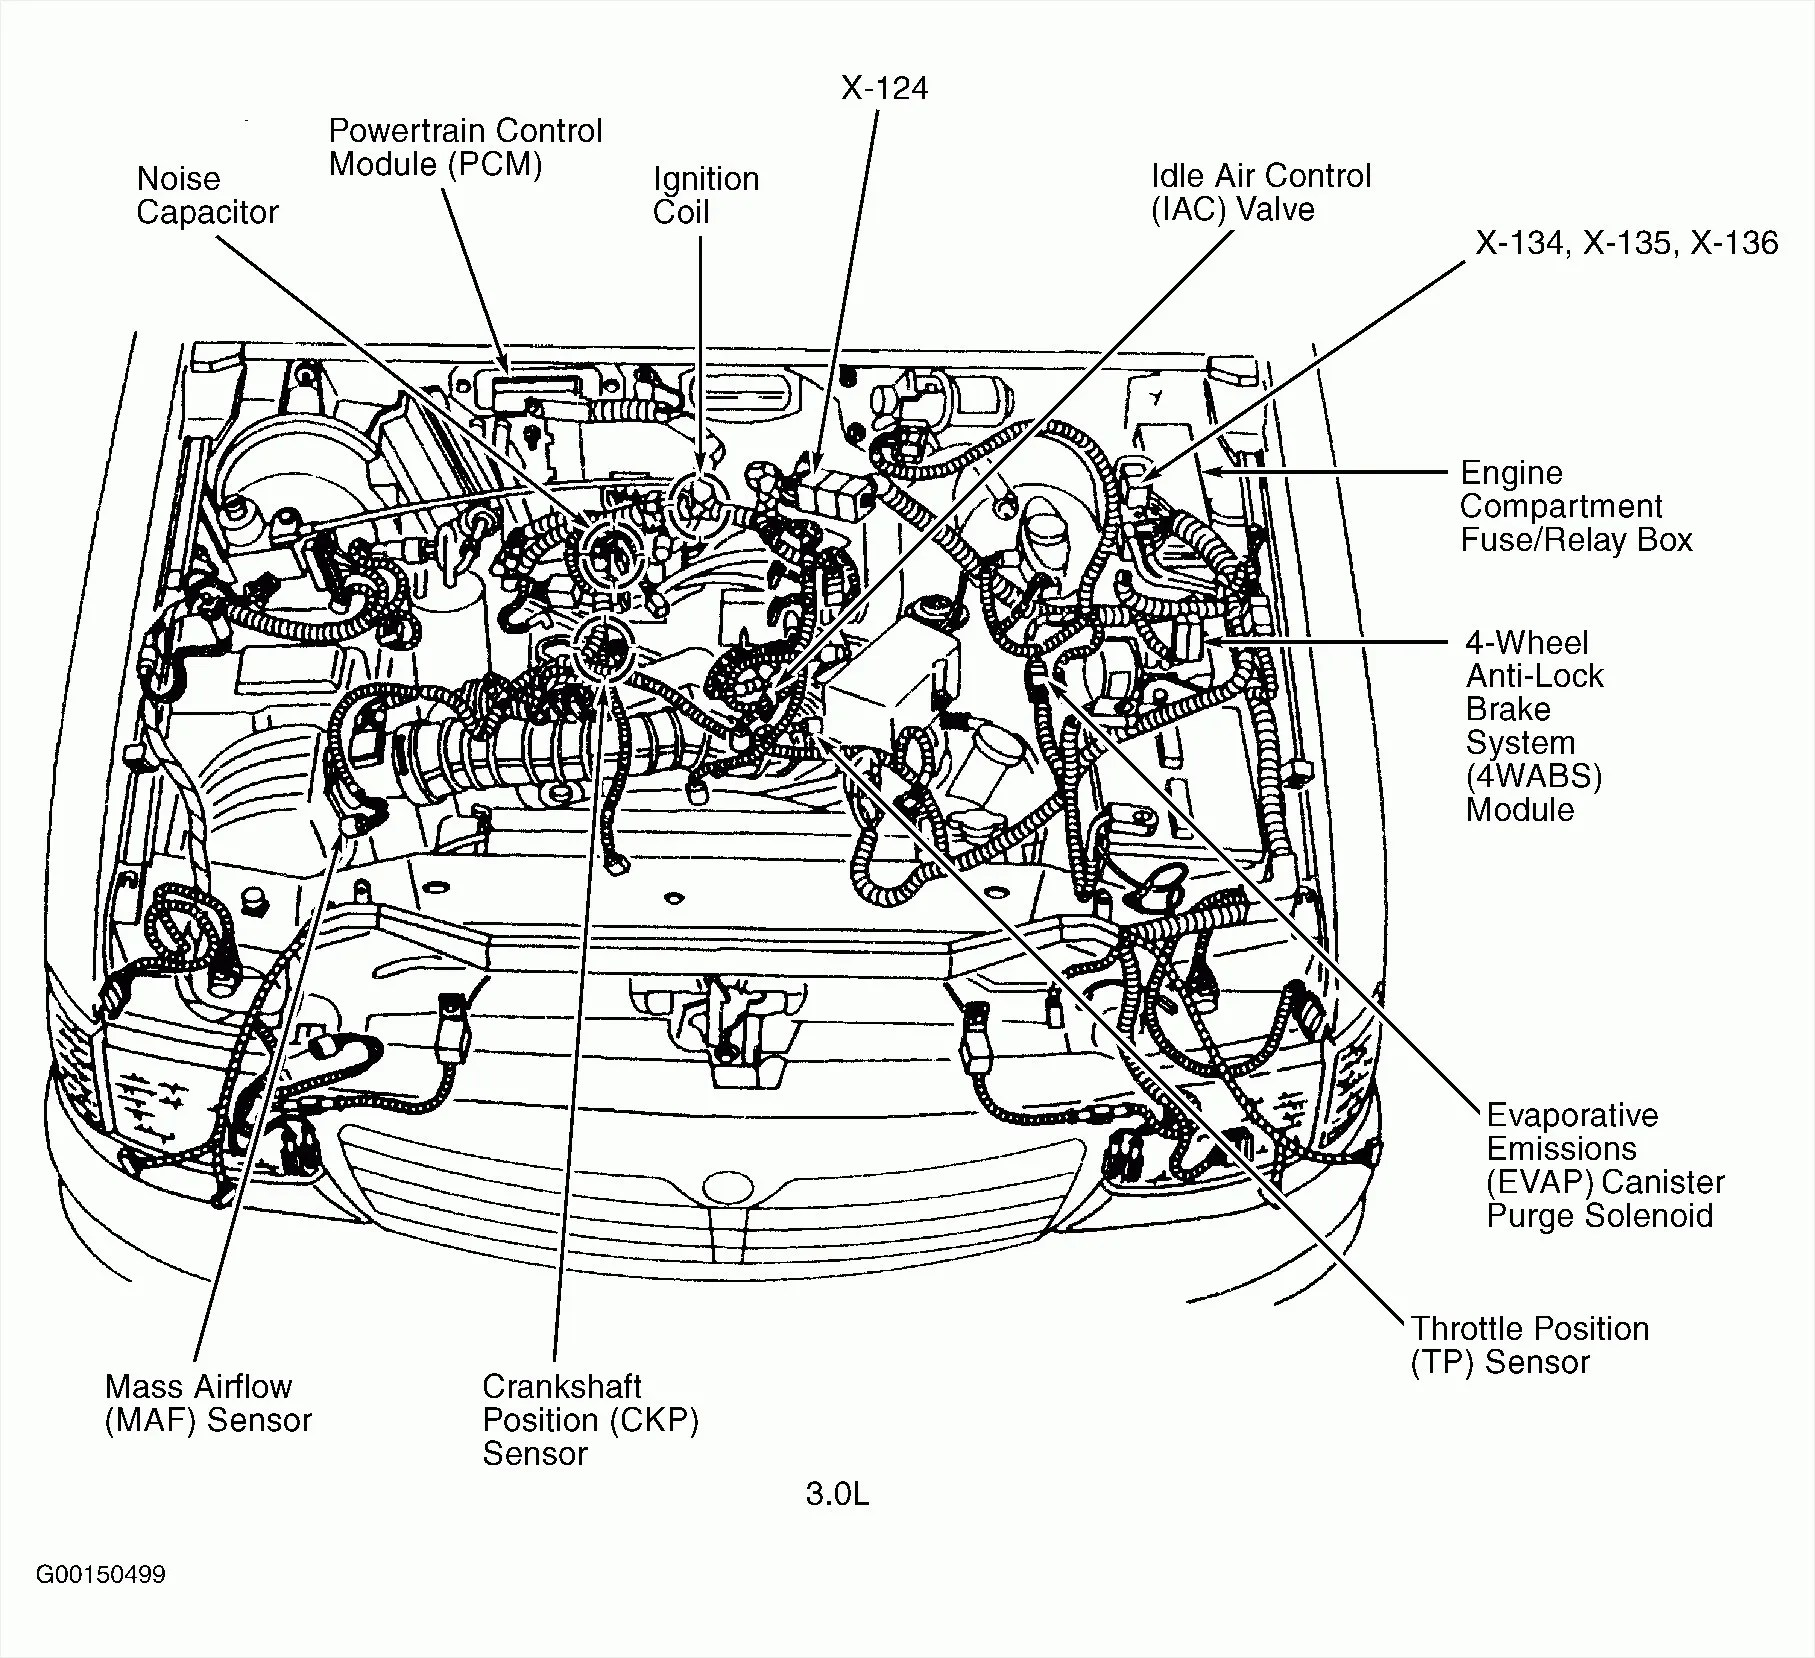 hight resolution of 96 jeep cherokee 5 2 engine diagram wiring diagram centre 98 jeep wrangler engine diagram